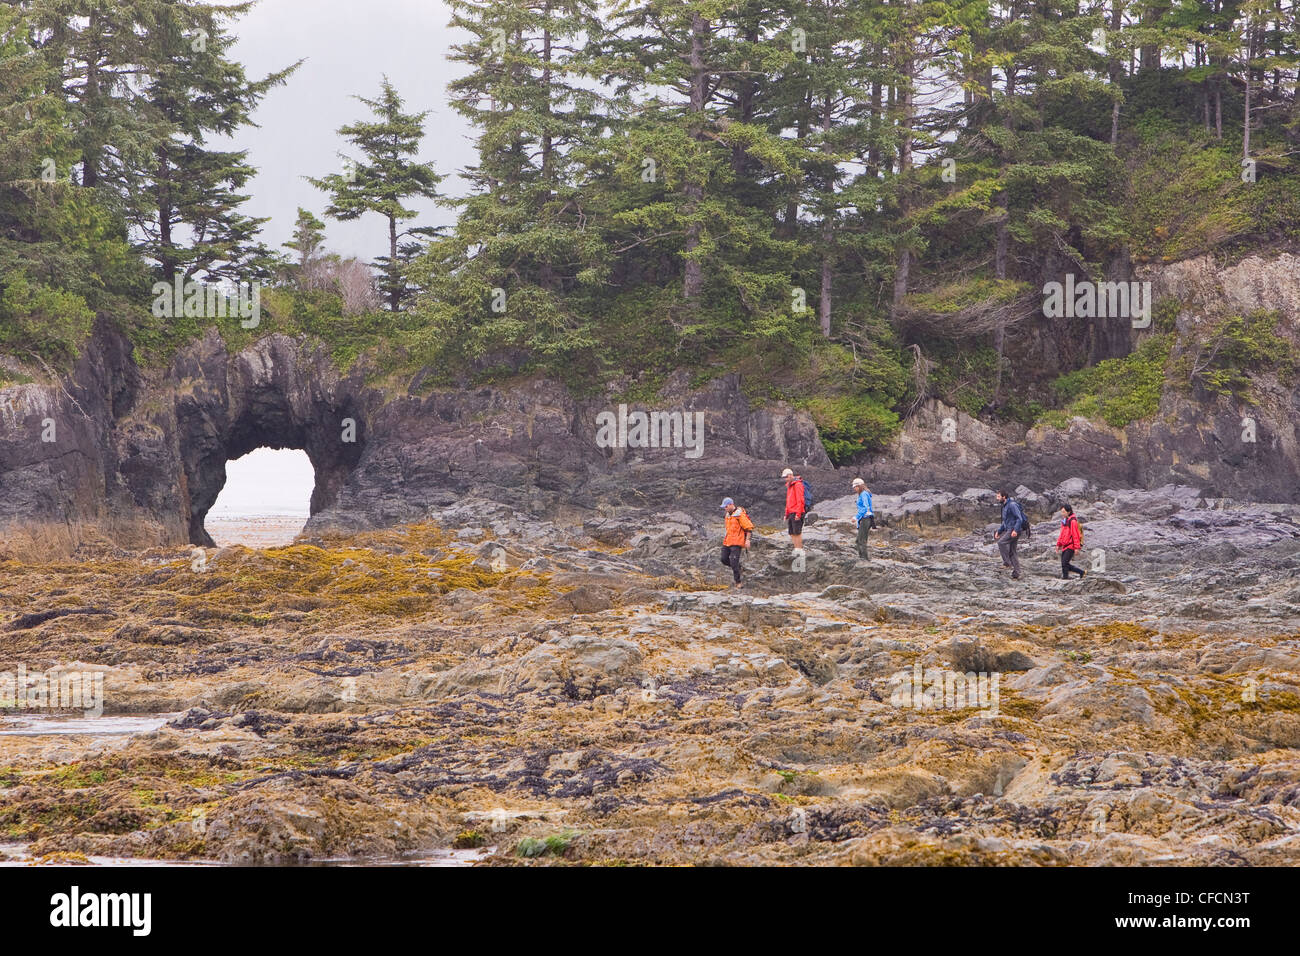 beachcombing at low tide. Spring Island, Kyuquot Sound, Northern Vancouver Island, British Columbia, Canada. - Stock Image